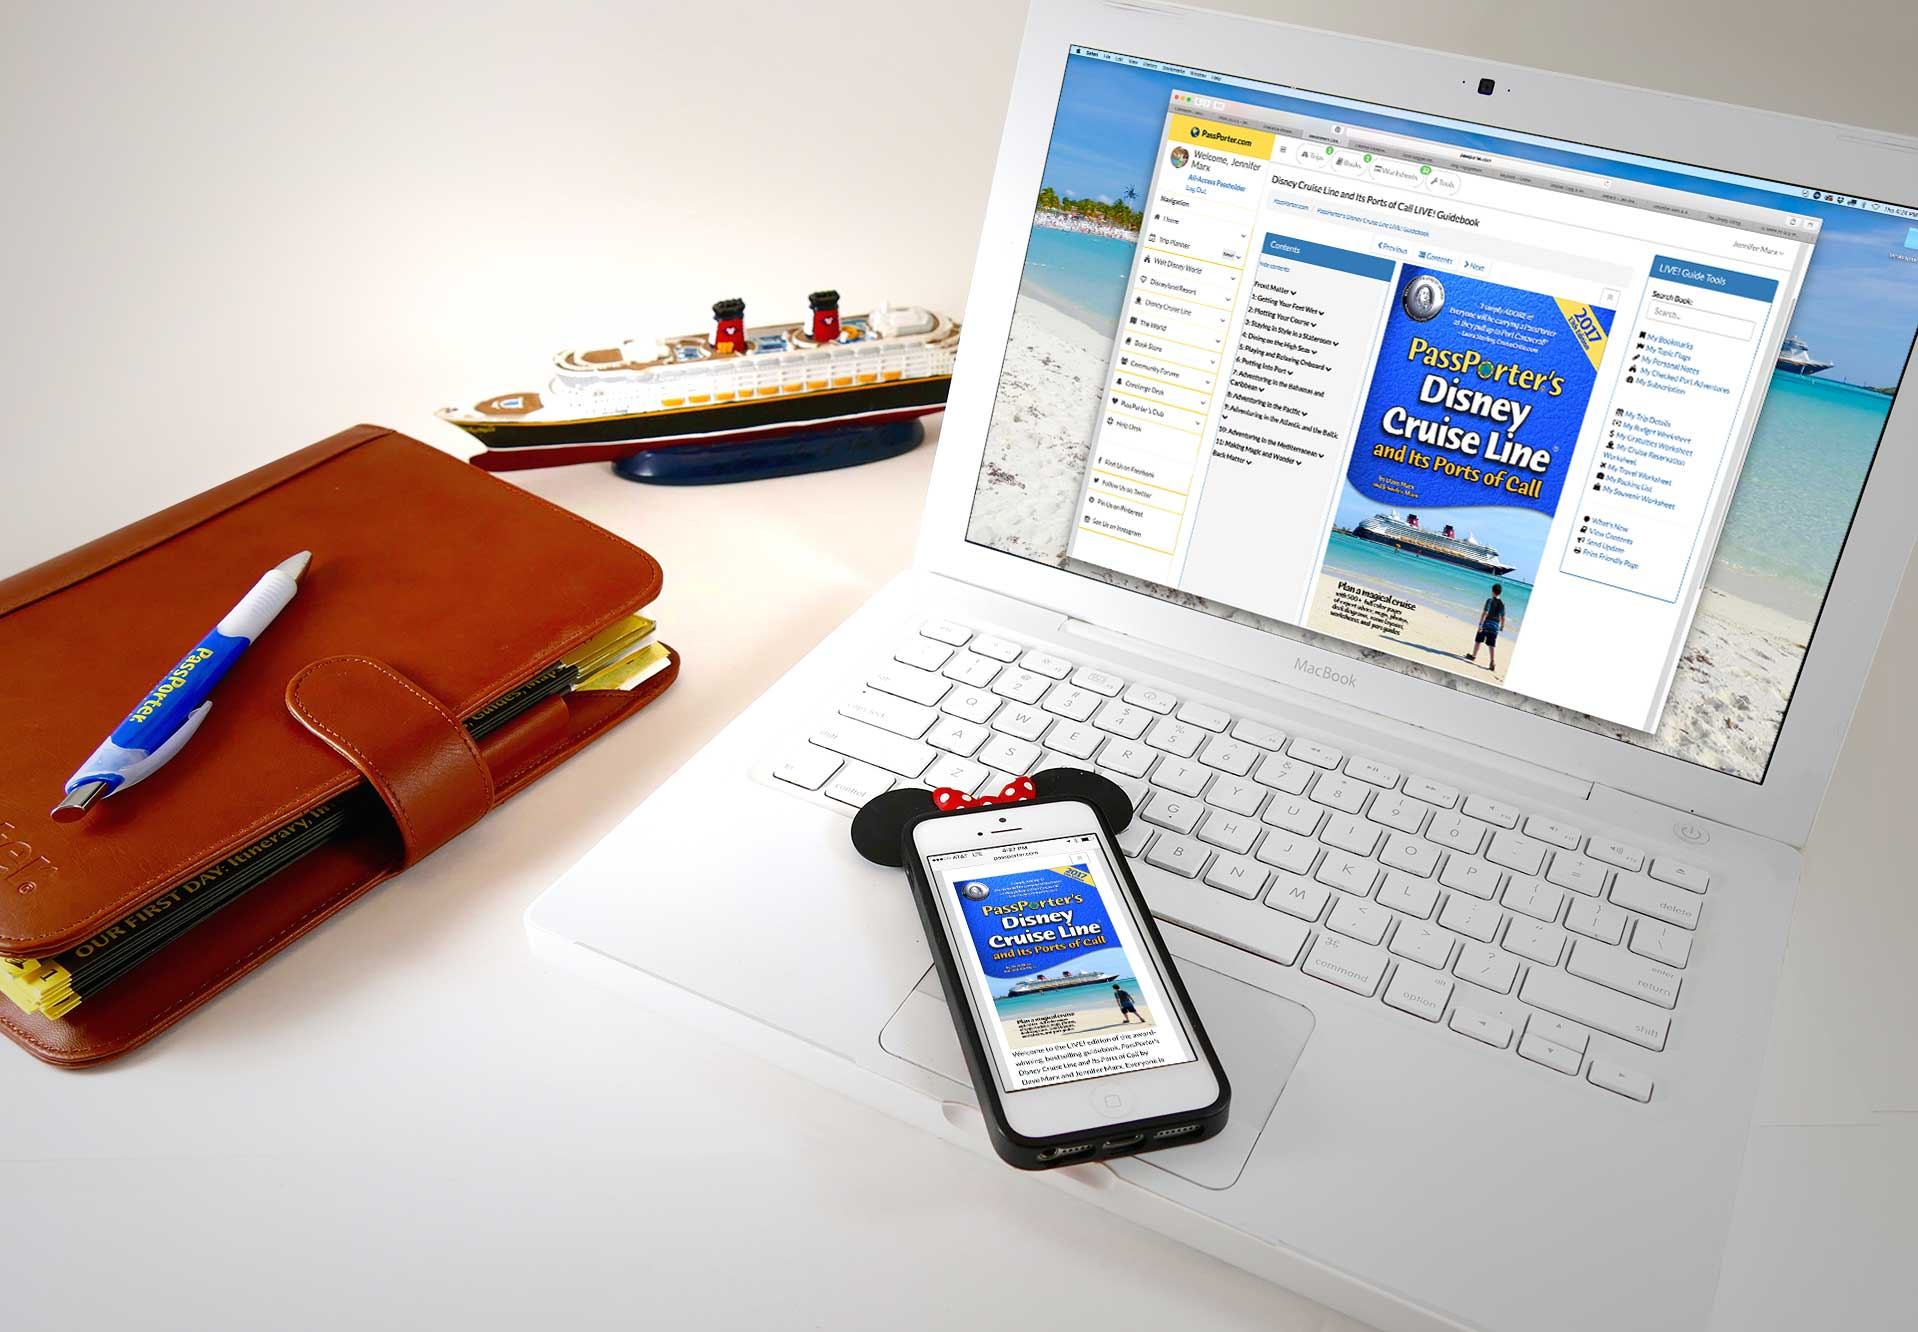 PassPorter Disney Cruise LIVE! Guide on Laptop and phone